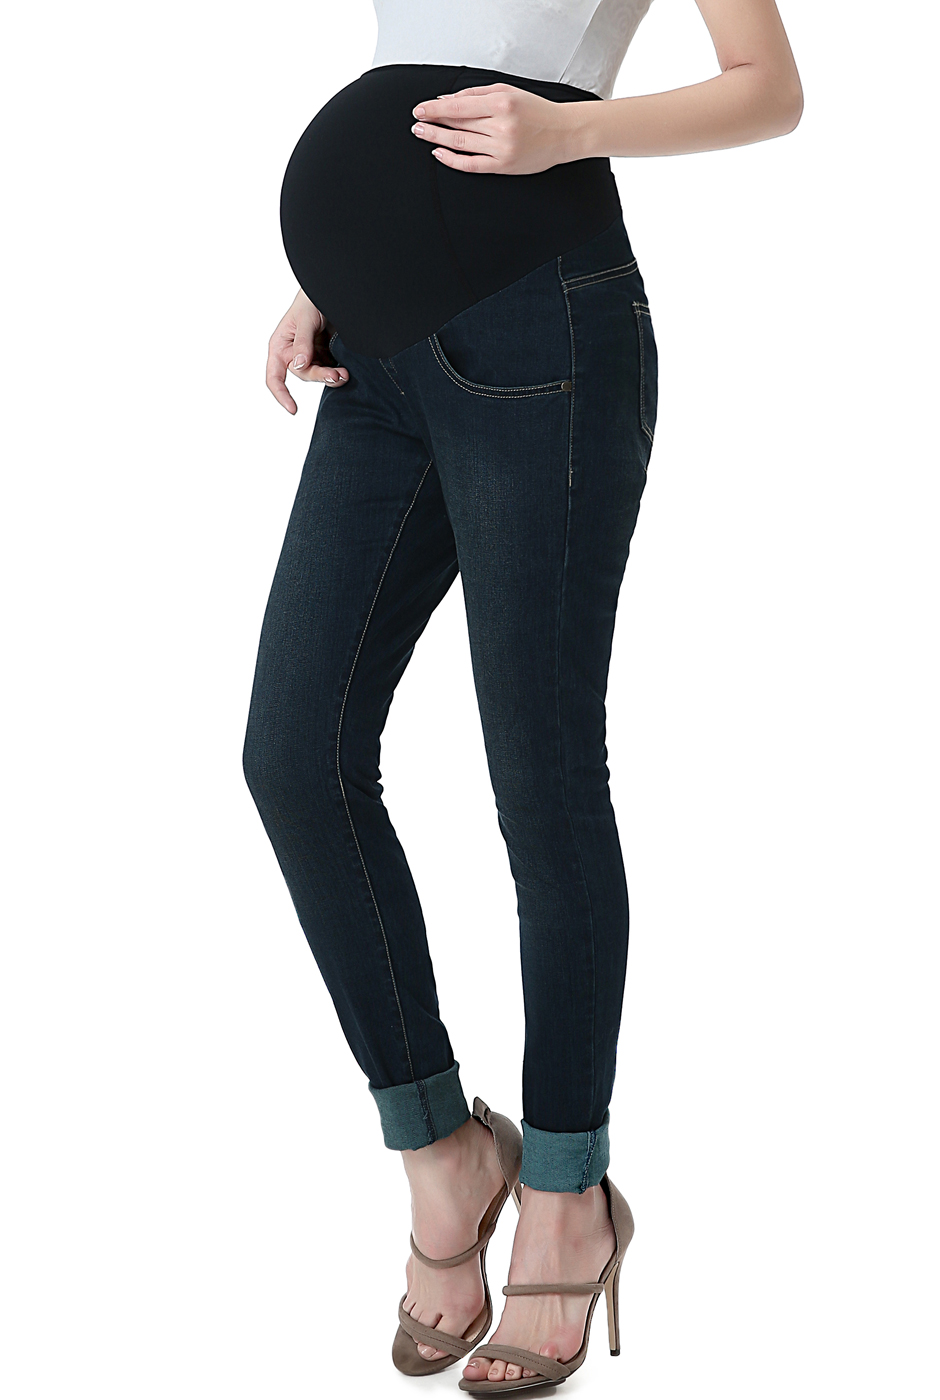 Maternity Women's Skinny Leg Denim Jeans - Rich Indigo 27